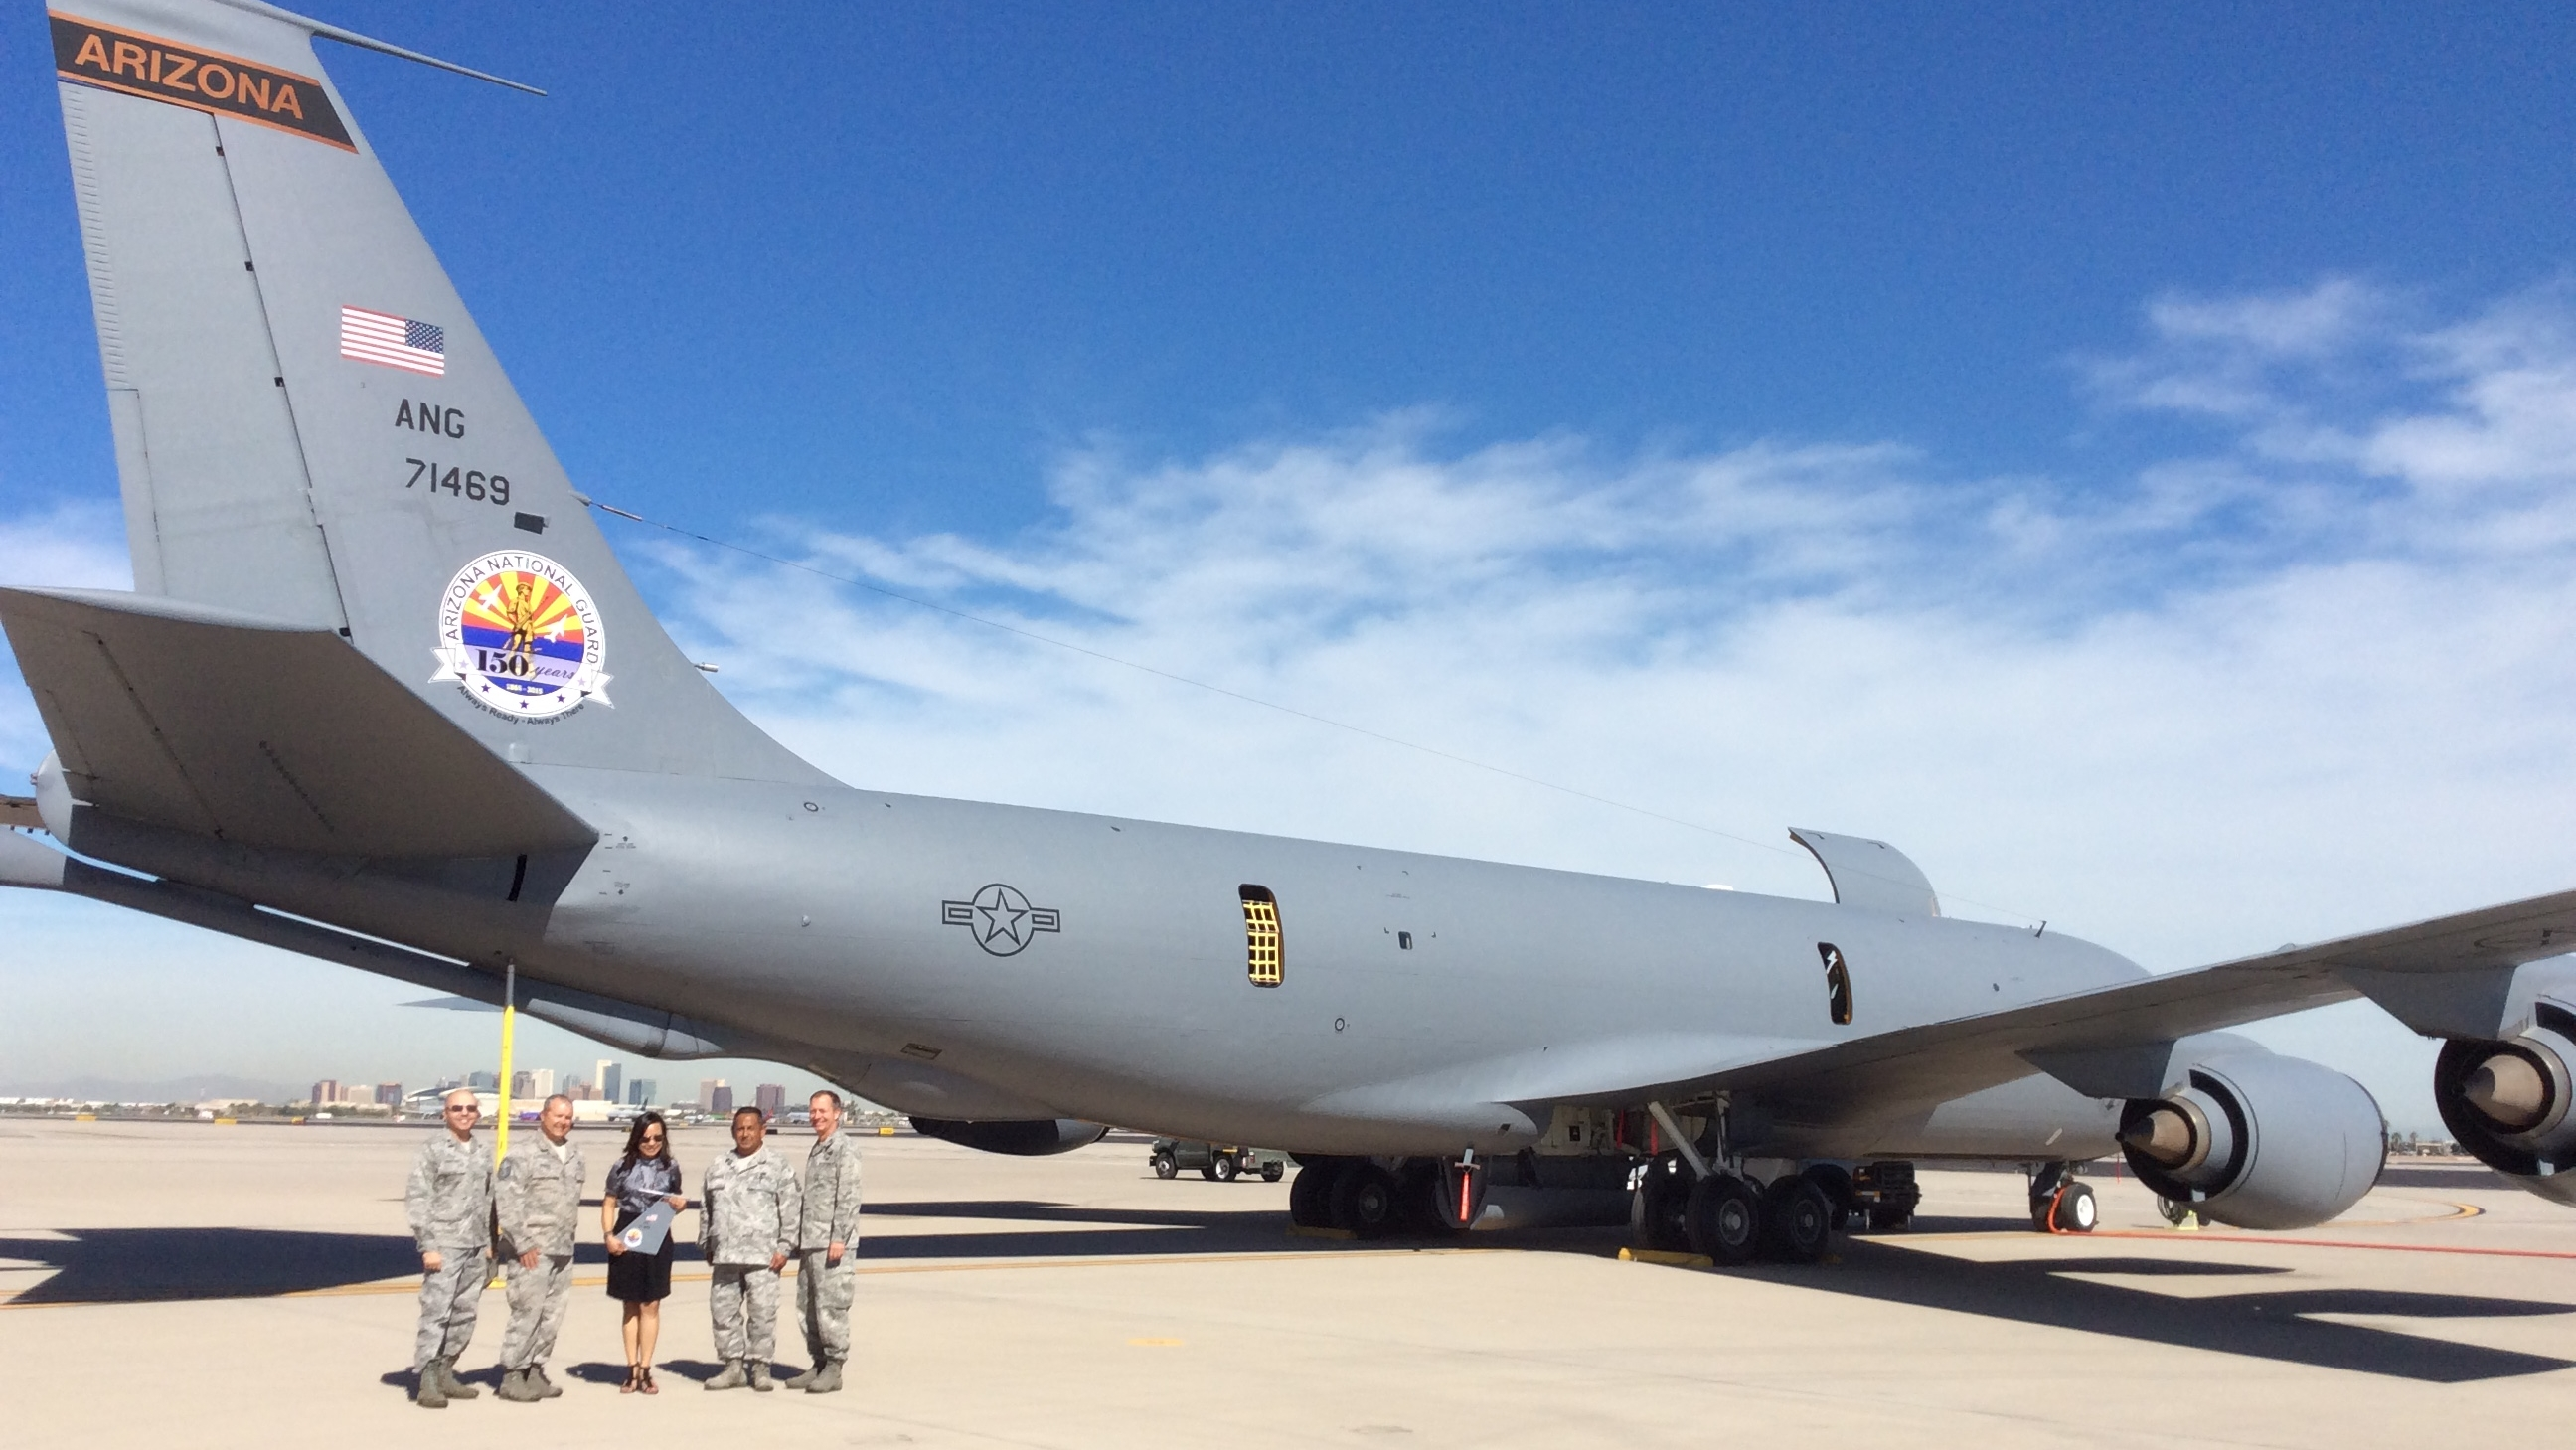 image of 161st Air Refueling Wing plane